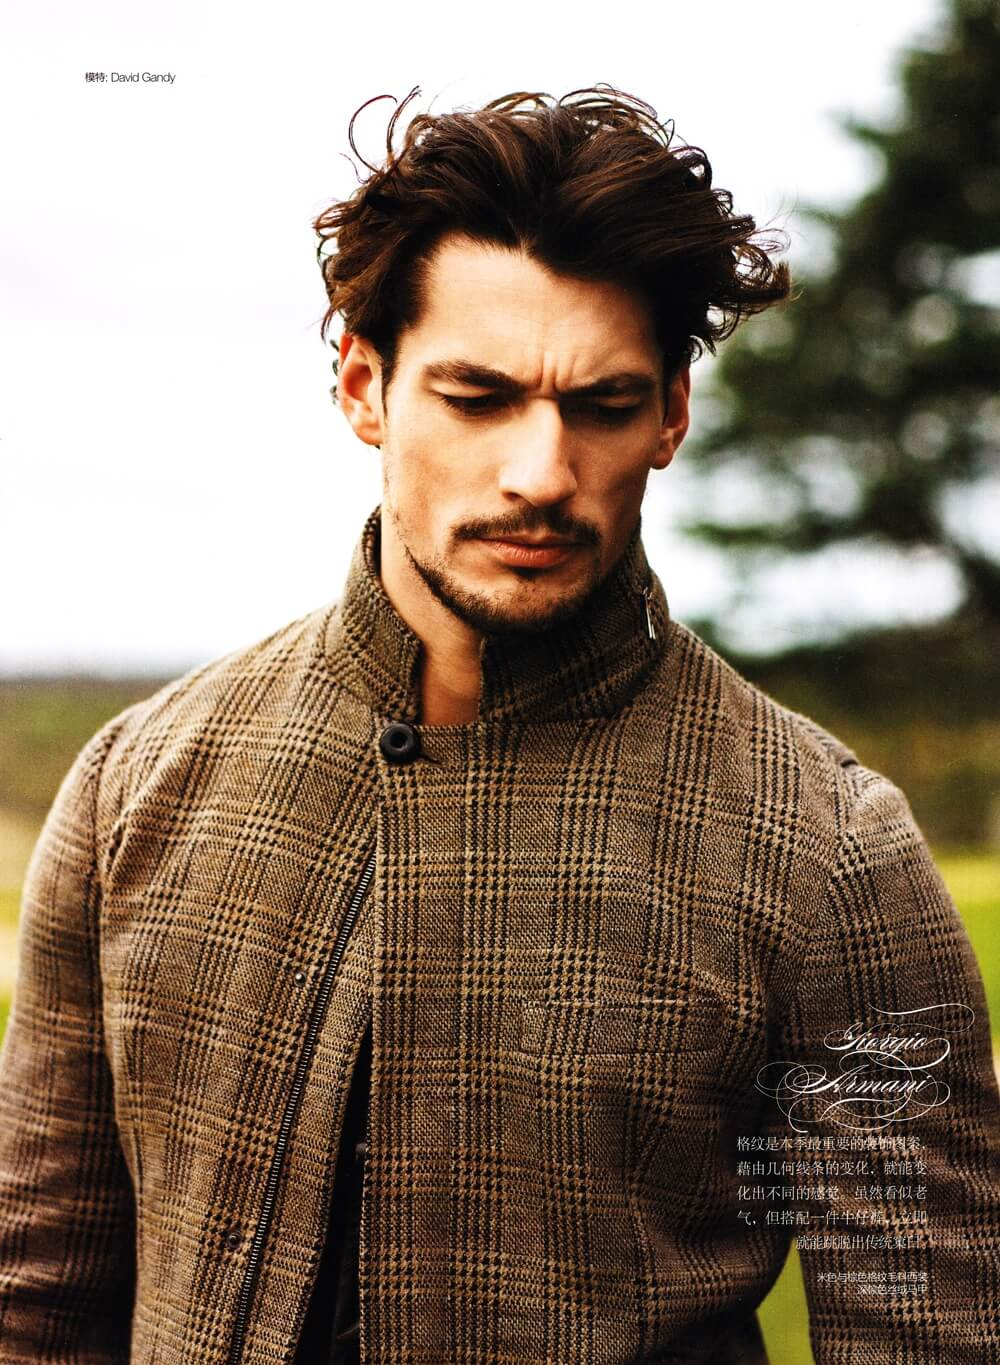 3 Male Models With Amazing Hairstyles Hairstyles